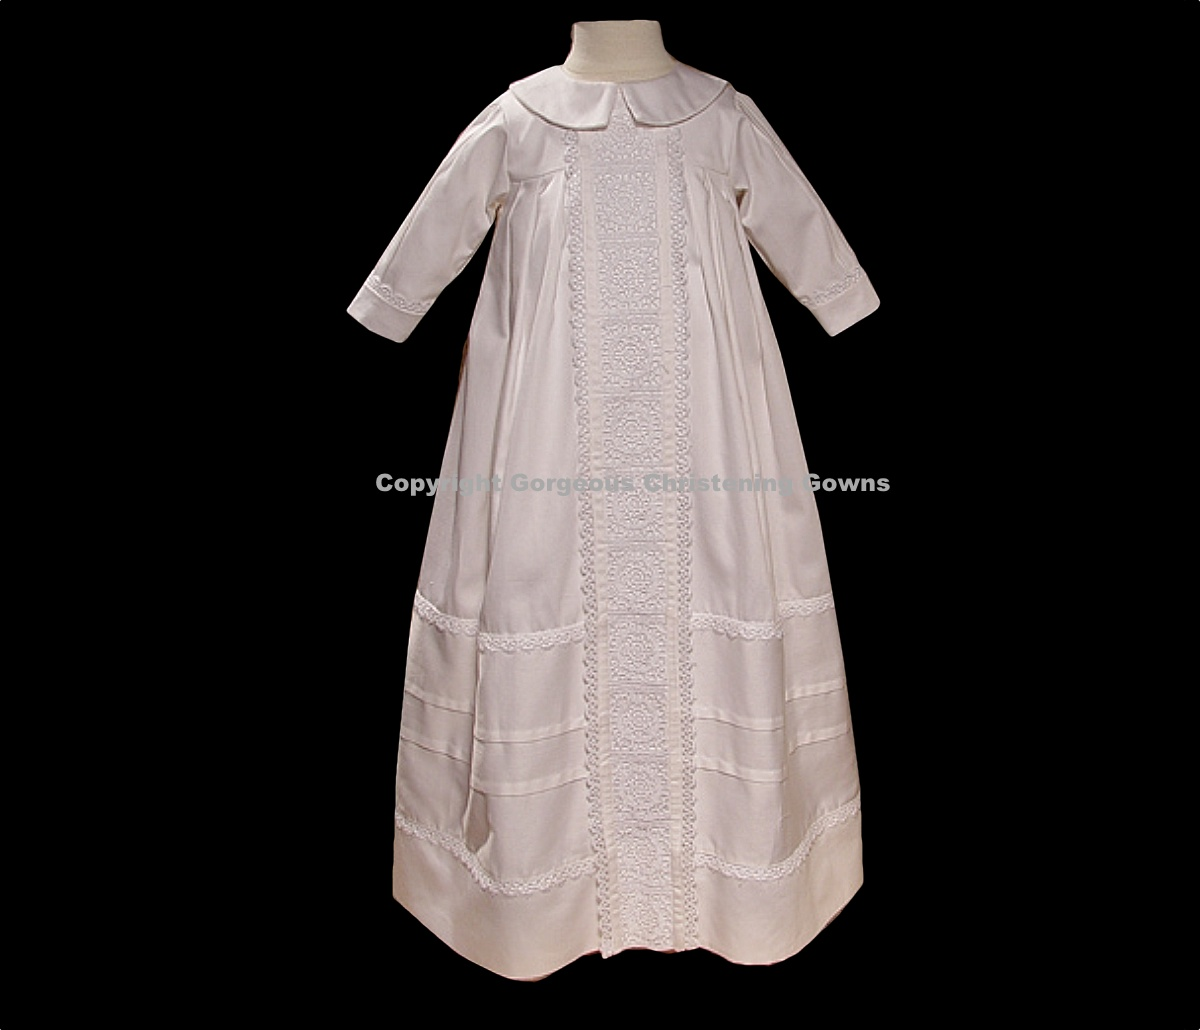 Boys Christening Outfits | Baby Baptism Gowns Wear | Melbourne Australia